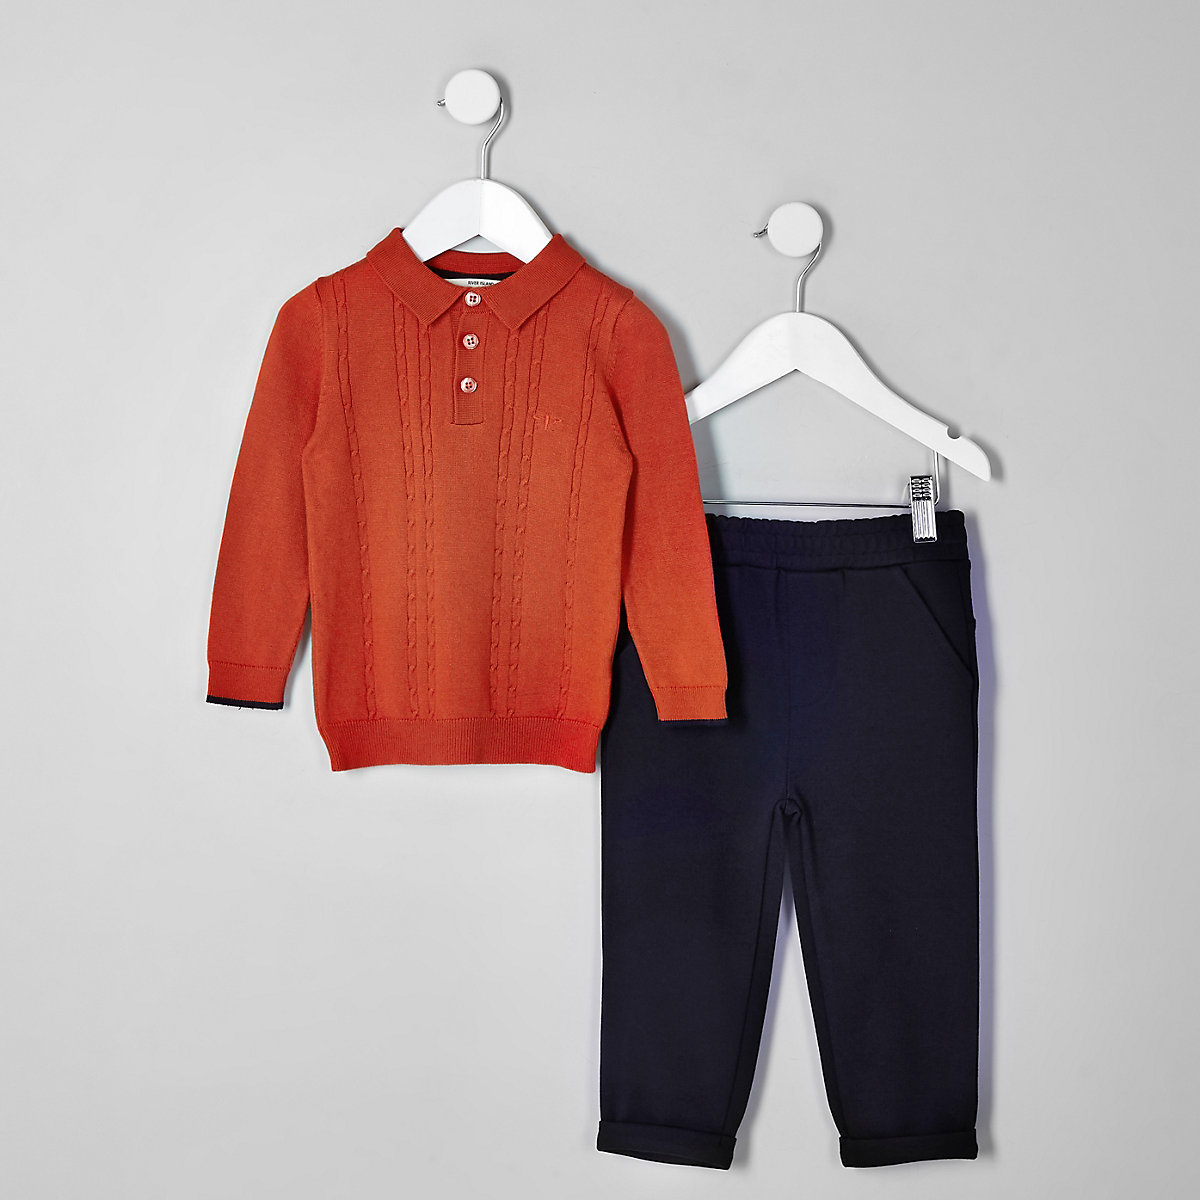 Mini boys orange polo shirt outfit